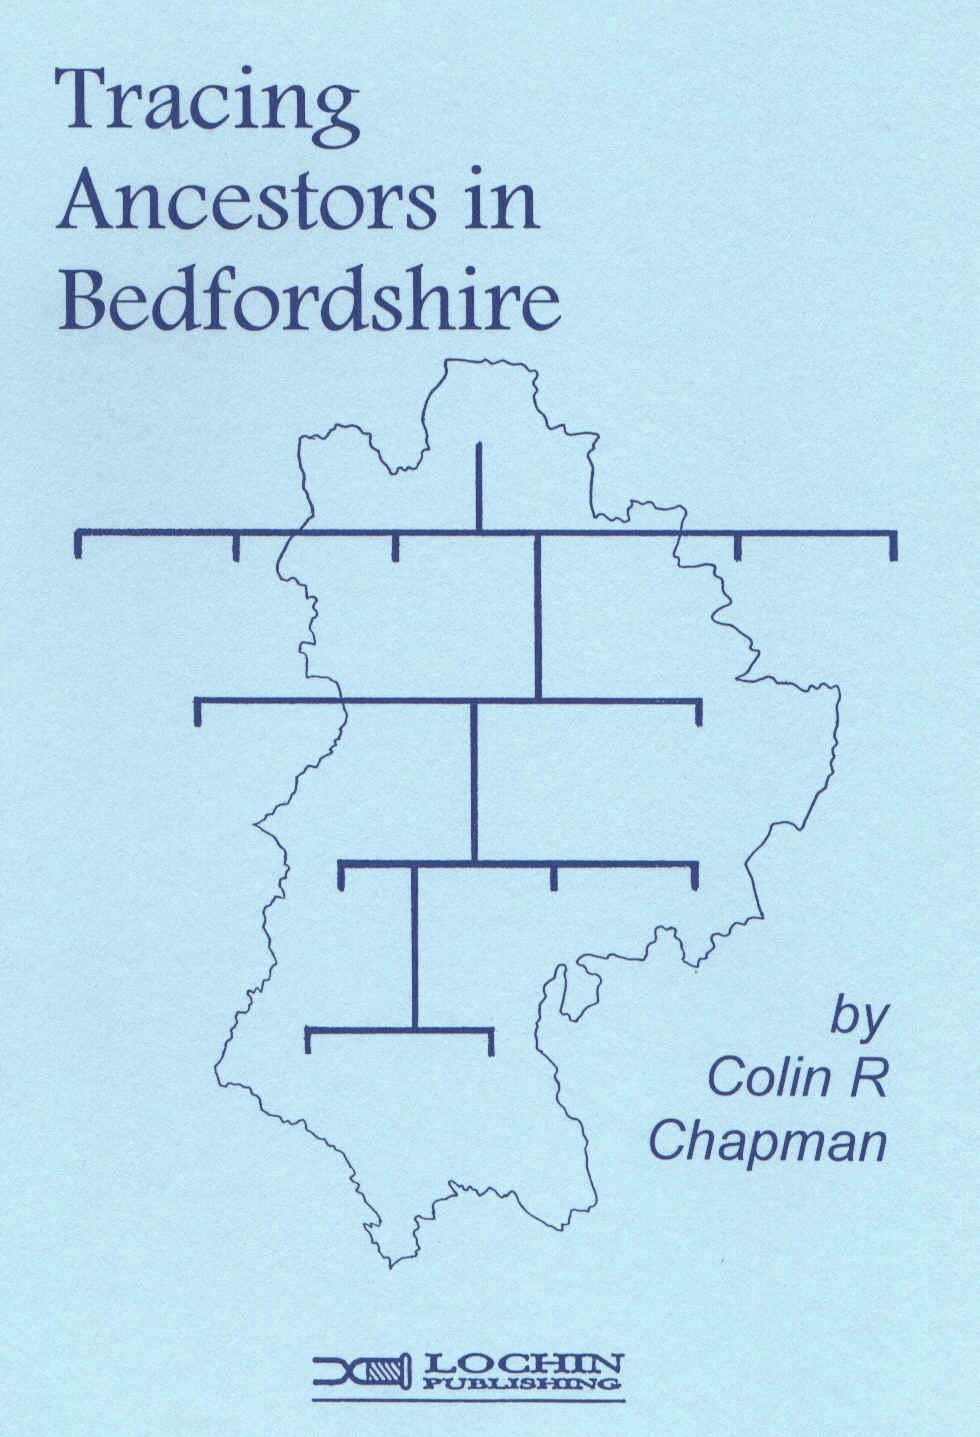 Tracing Ancestors in Bedfordshire